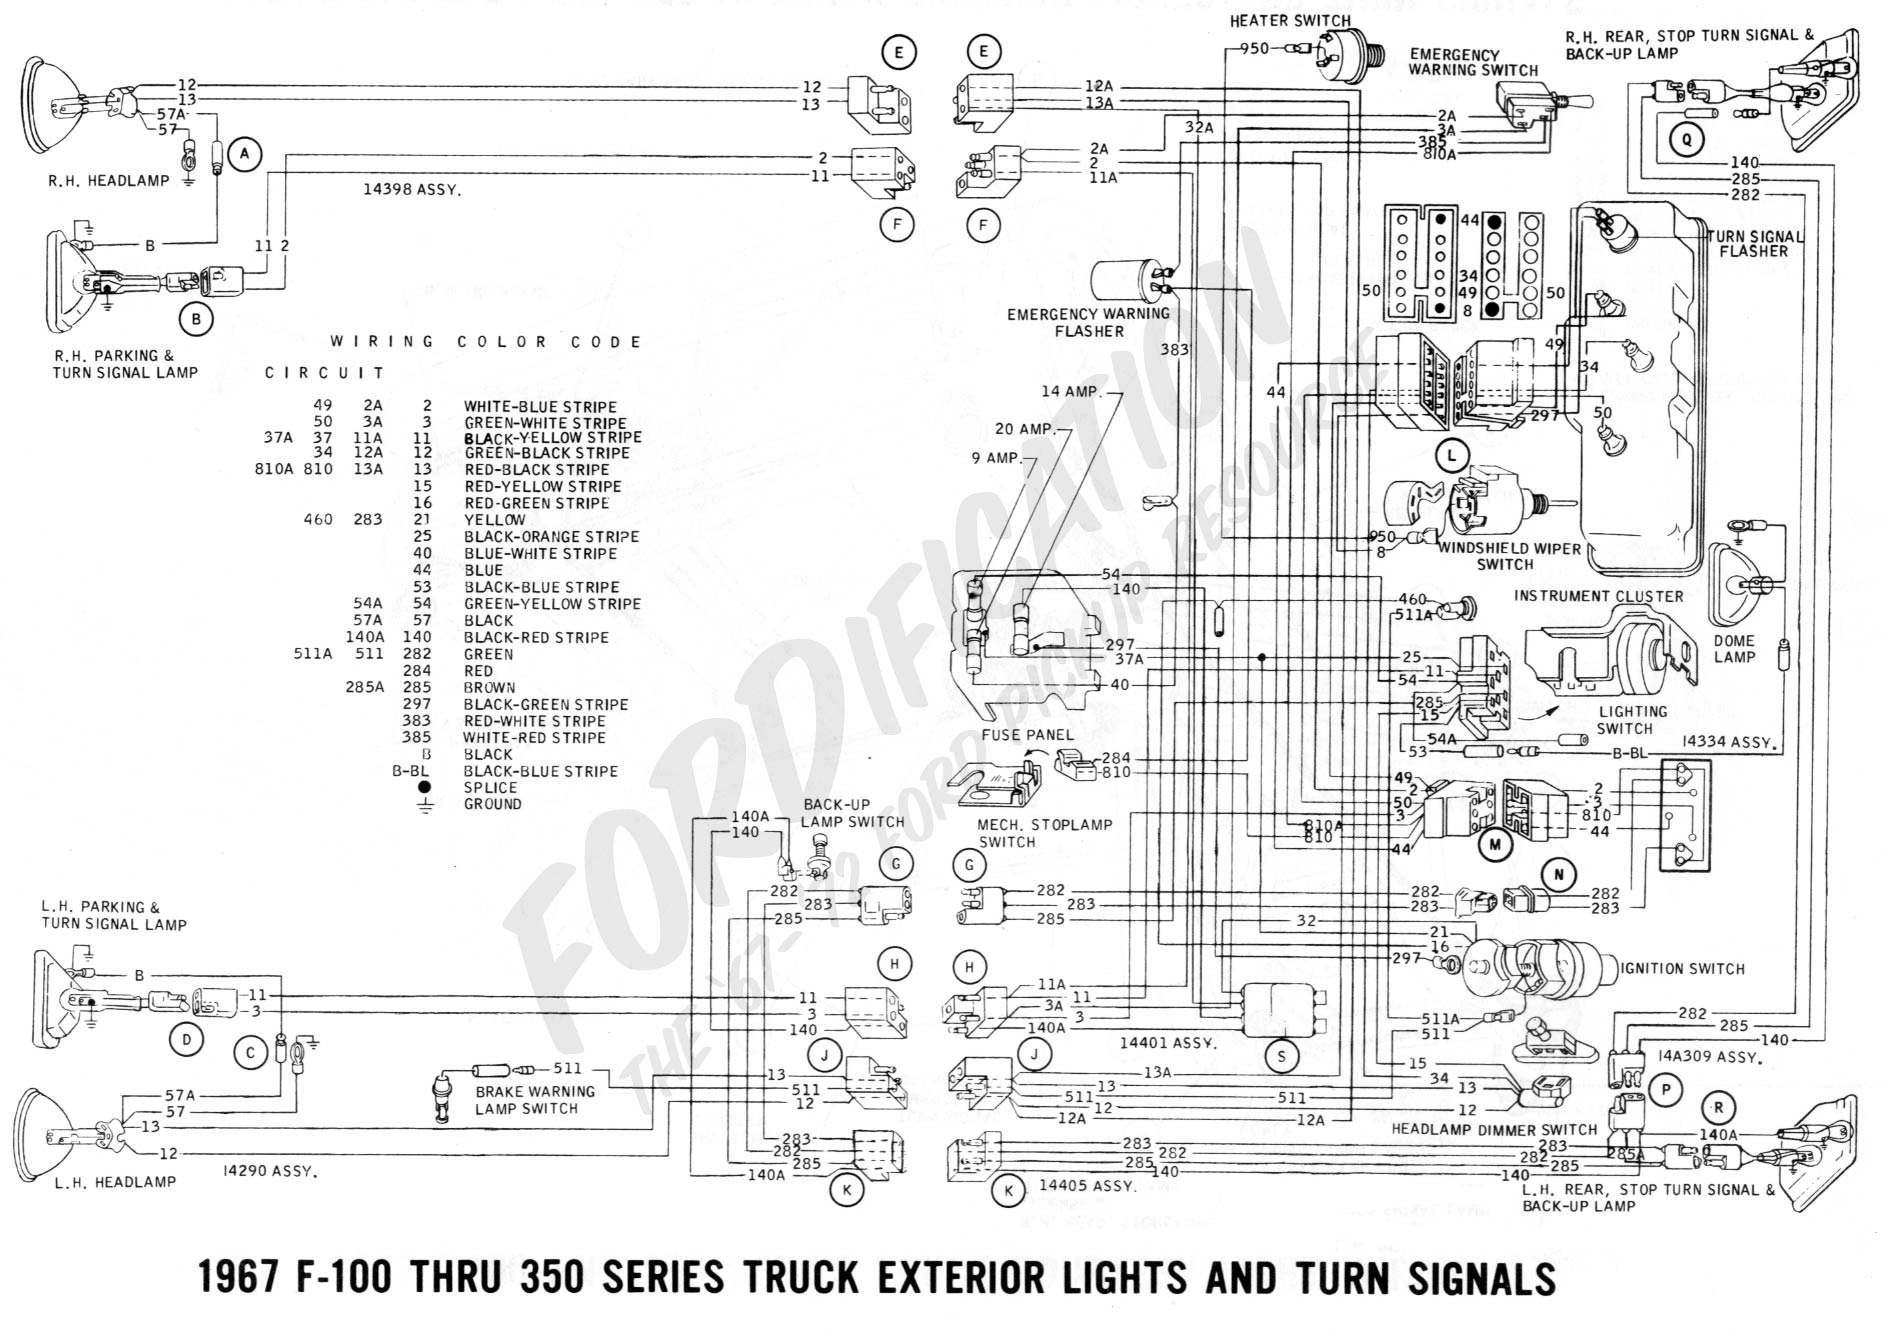 67 mustang alternator wiring diagram 67 discover your wiring 69 chevelle wiring harness painless 1966 chevy